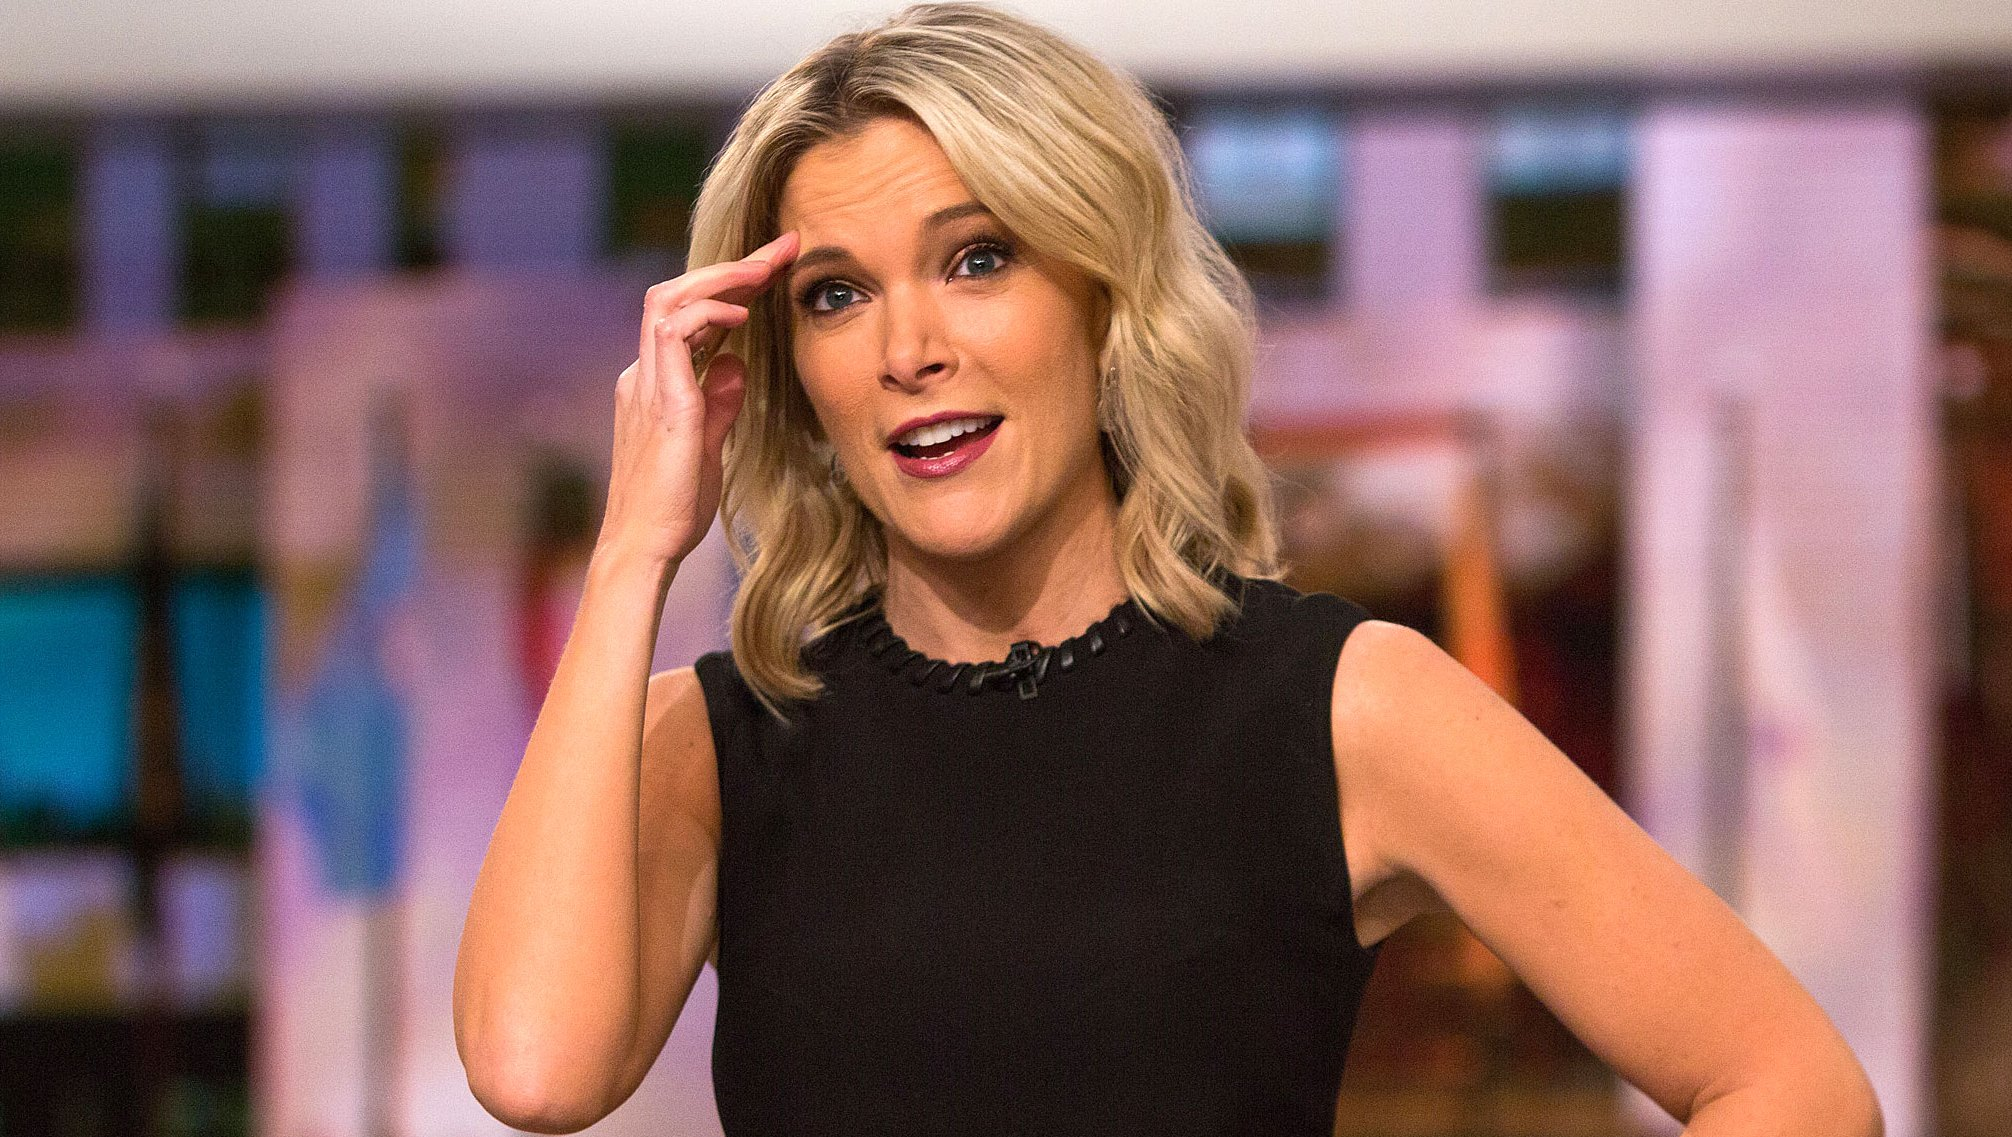 No Excuses! Megyn Kelly Jokes About Unemployment as She Heads to Jury Duty